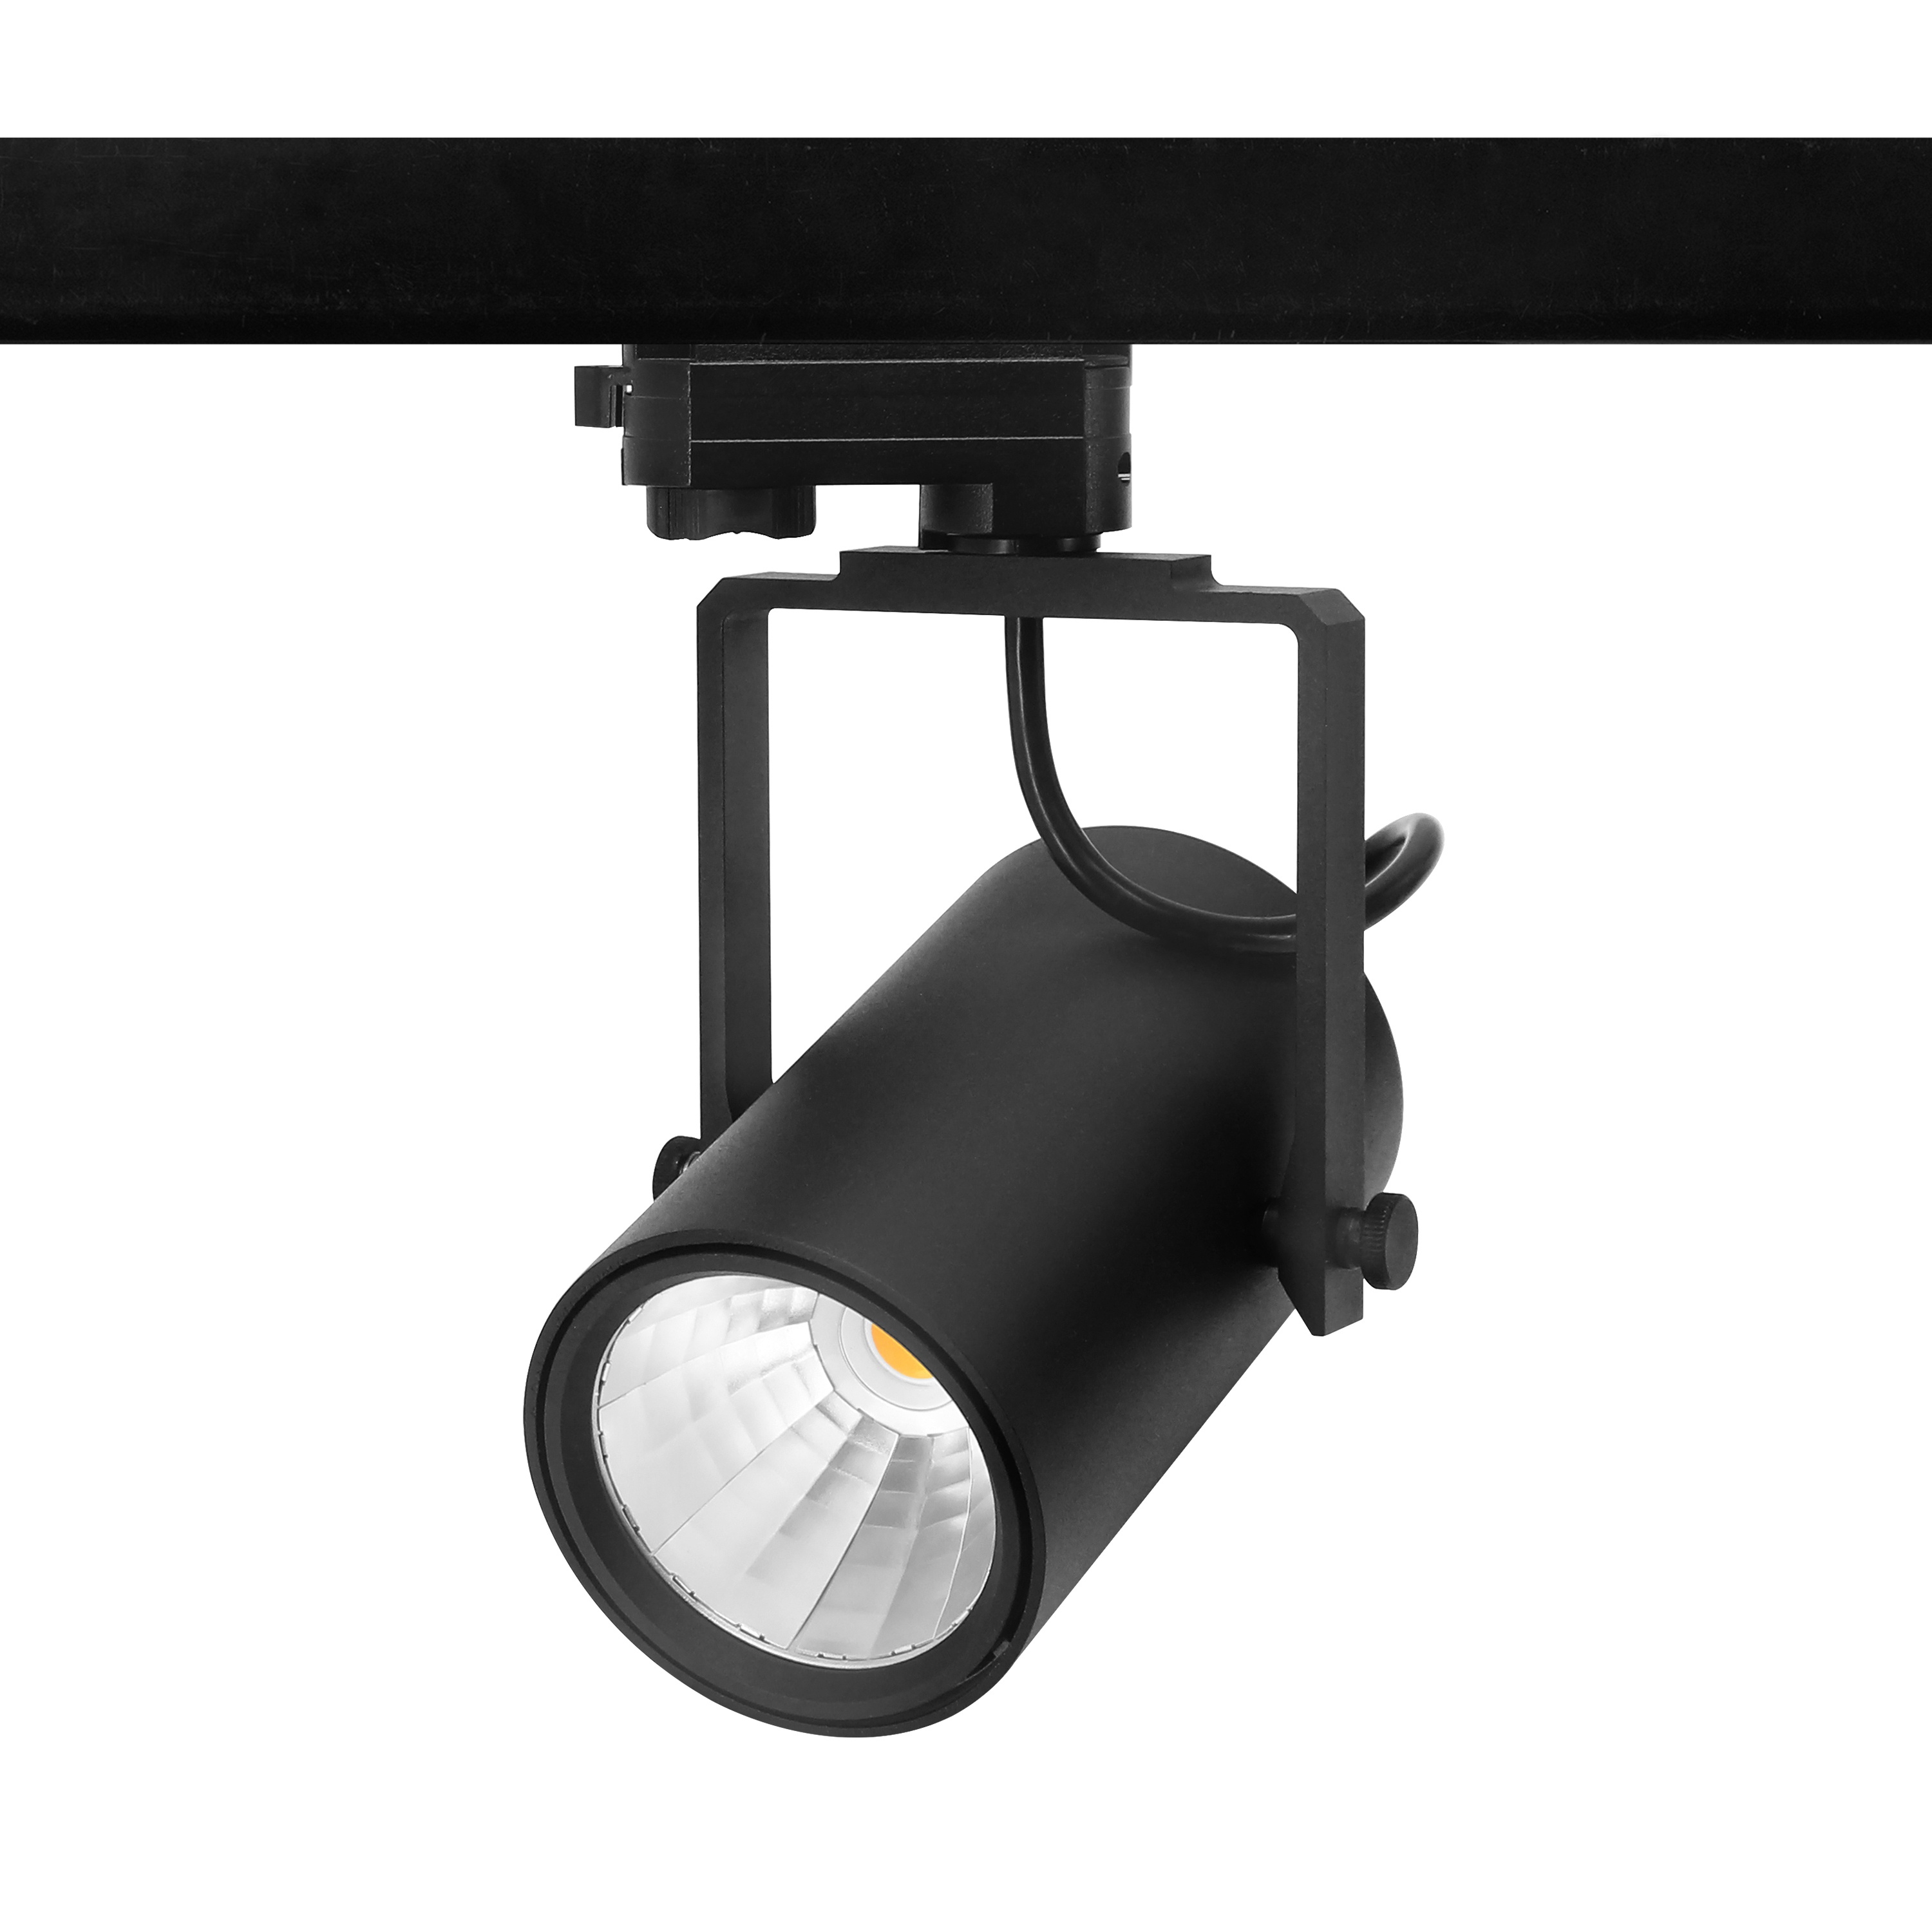 F1 series 30W LED track light, Tridonic LED driver, flicker free, Citizen COB LEDs, 120lm/W CRI80 4000K, UGR<19 15,24,36. 60degree 4 beam angle, 5 years warranty